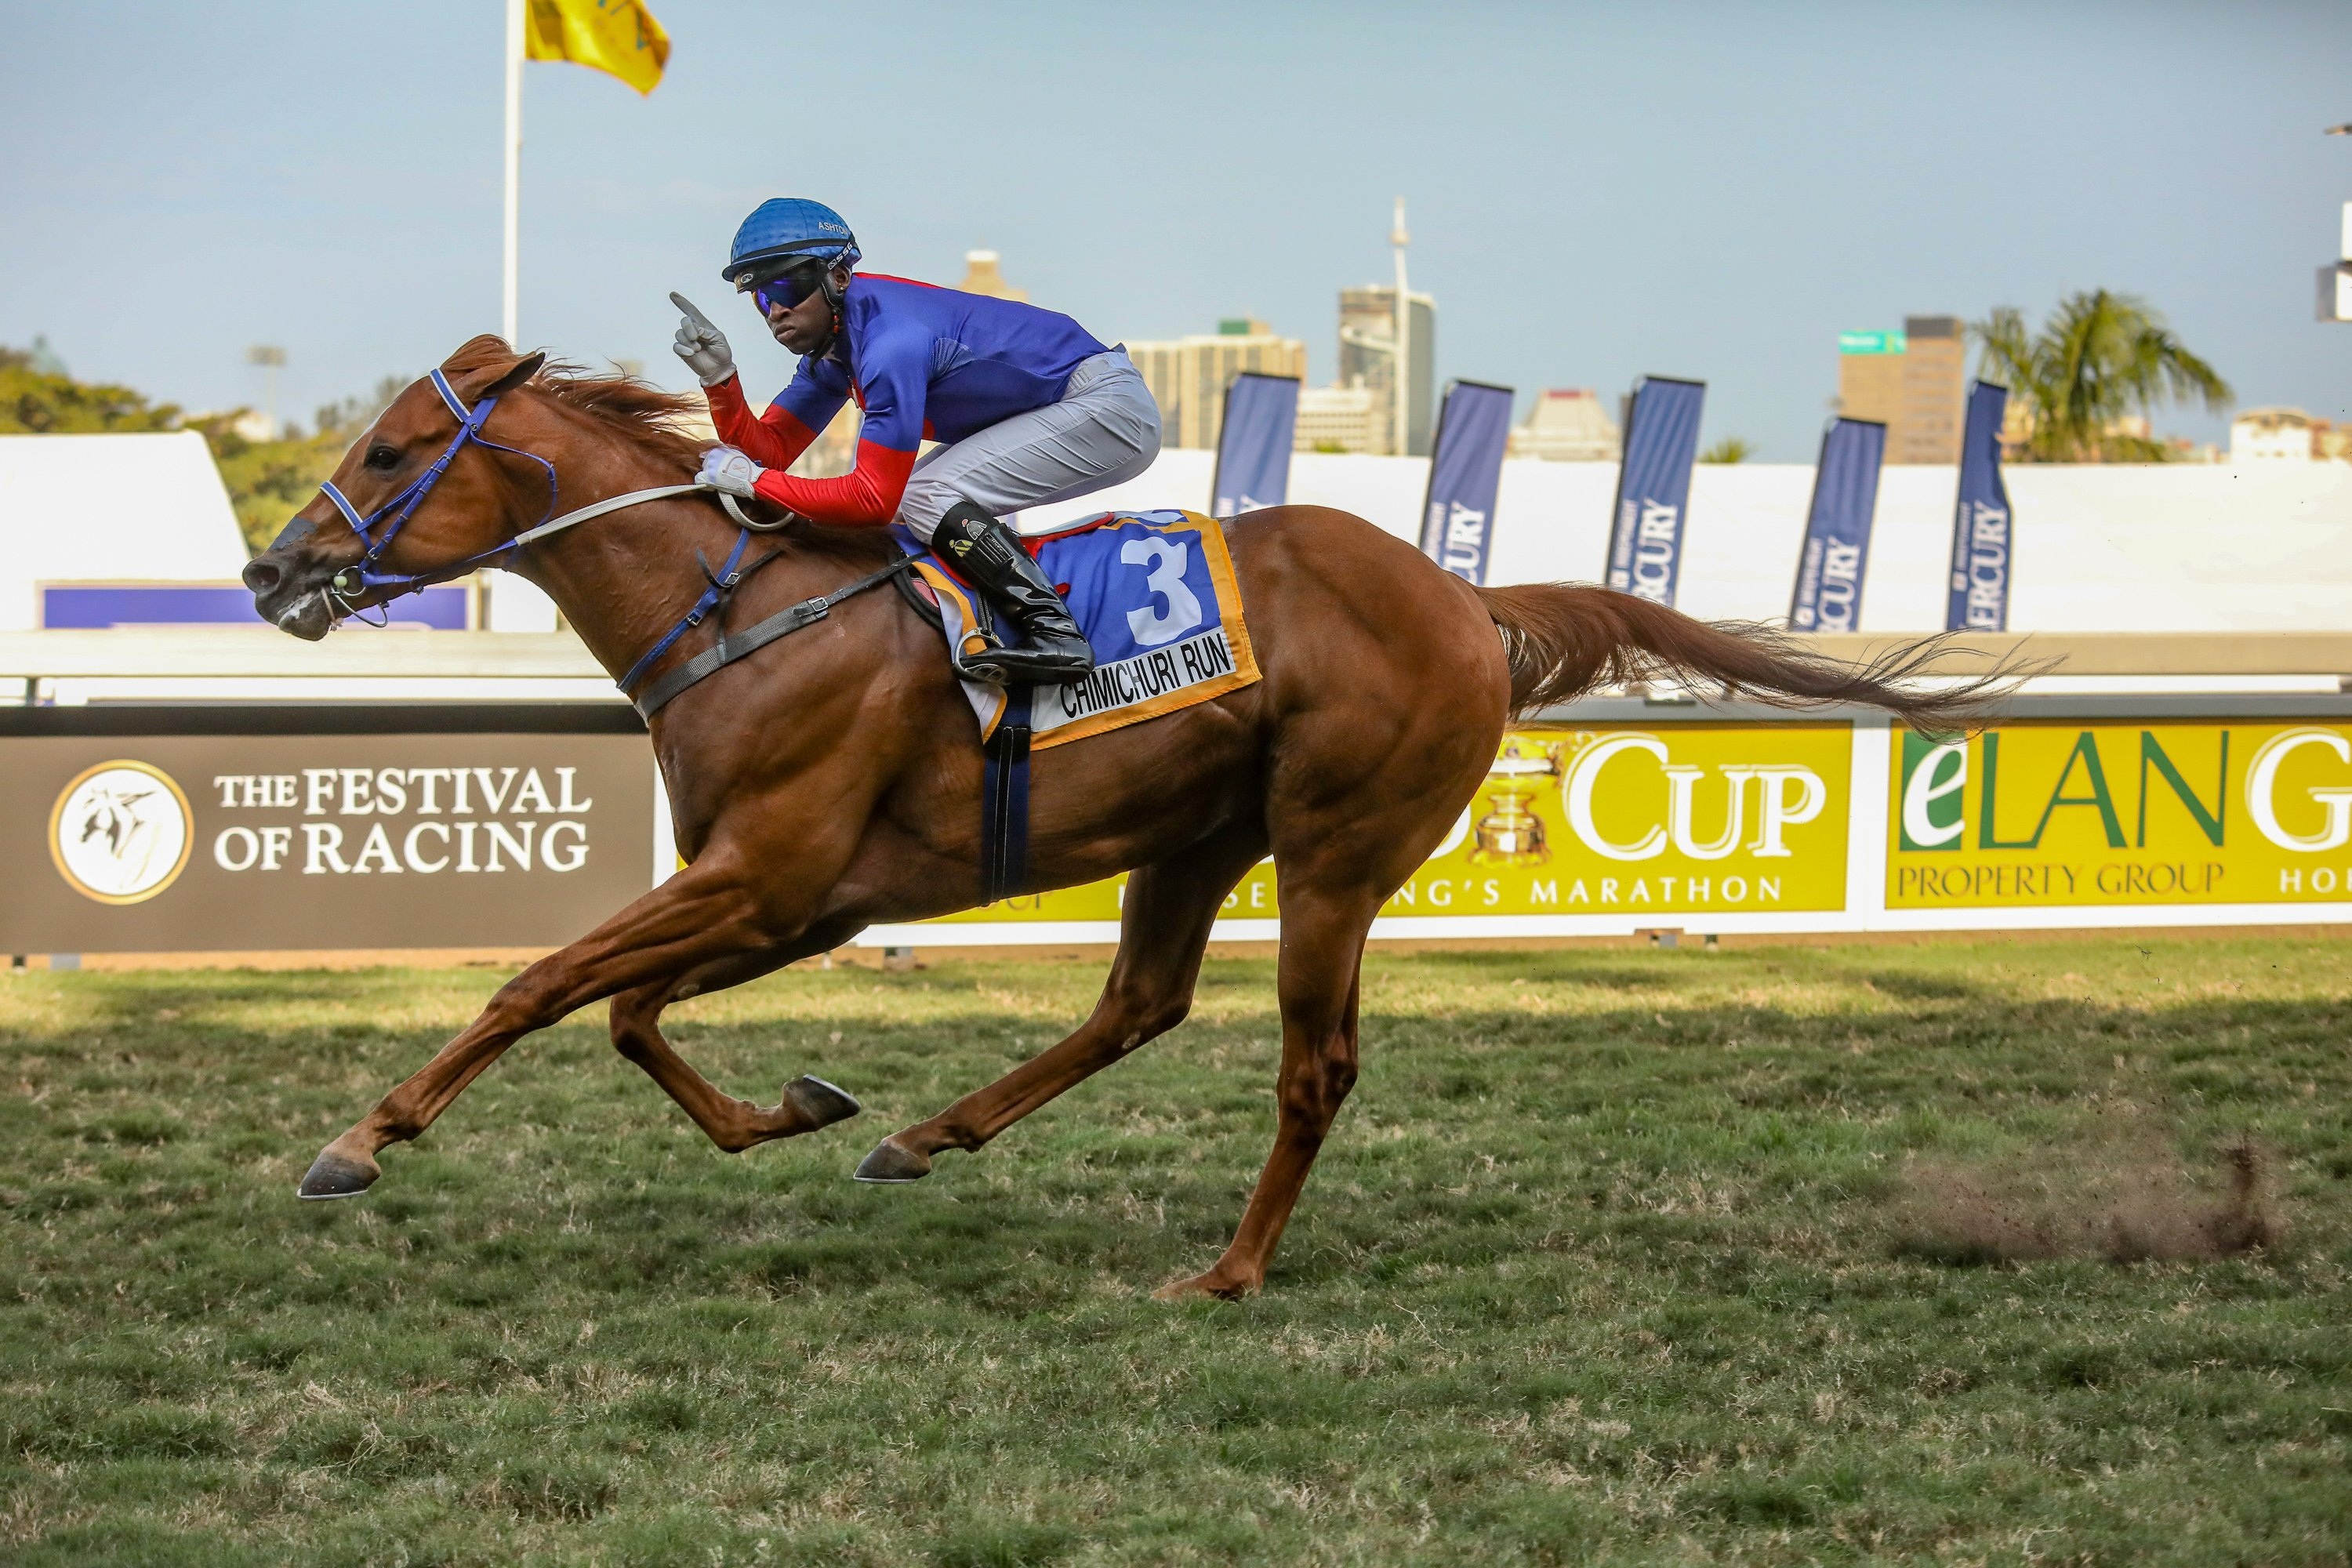 Chimichuri Run out of #kznbred Gr1 winning mare, Spiced Gold, takes the Gr3 Umkhomazi Stakes. Image: Candiese Marnewick